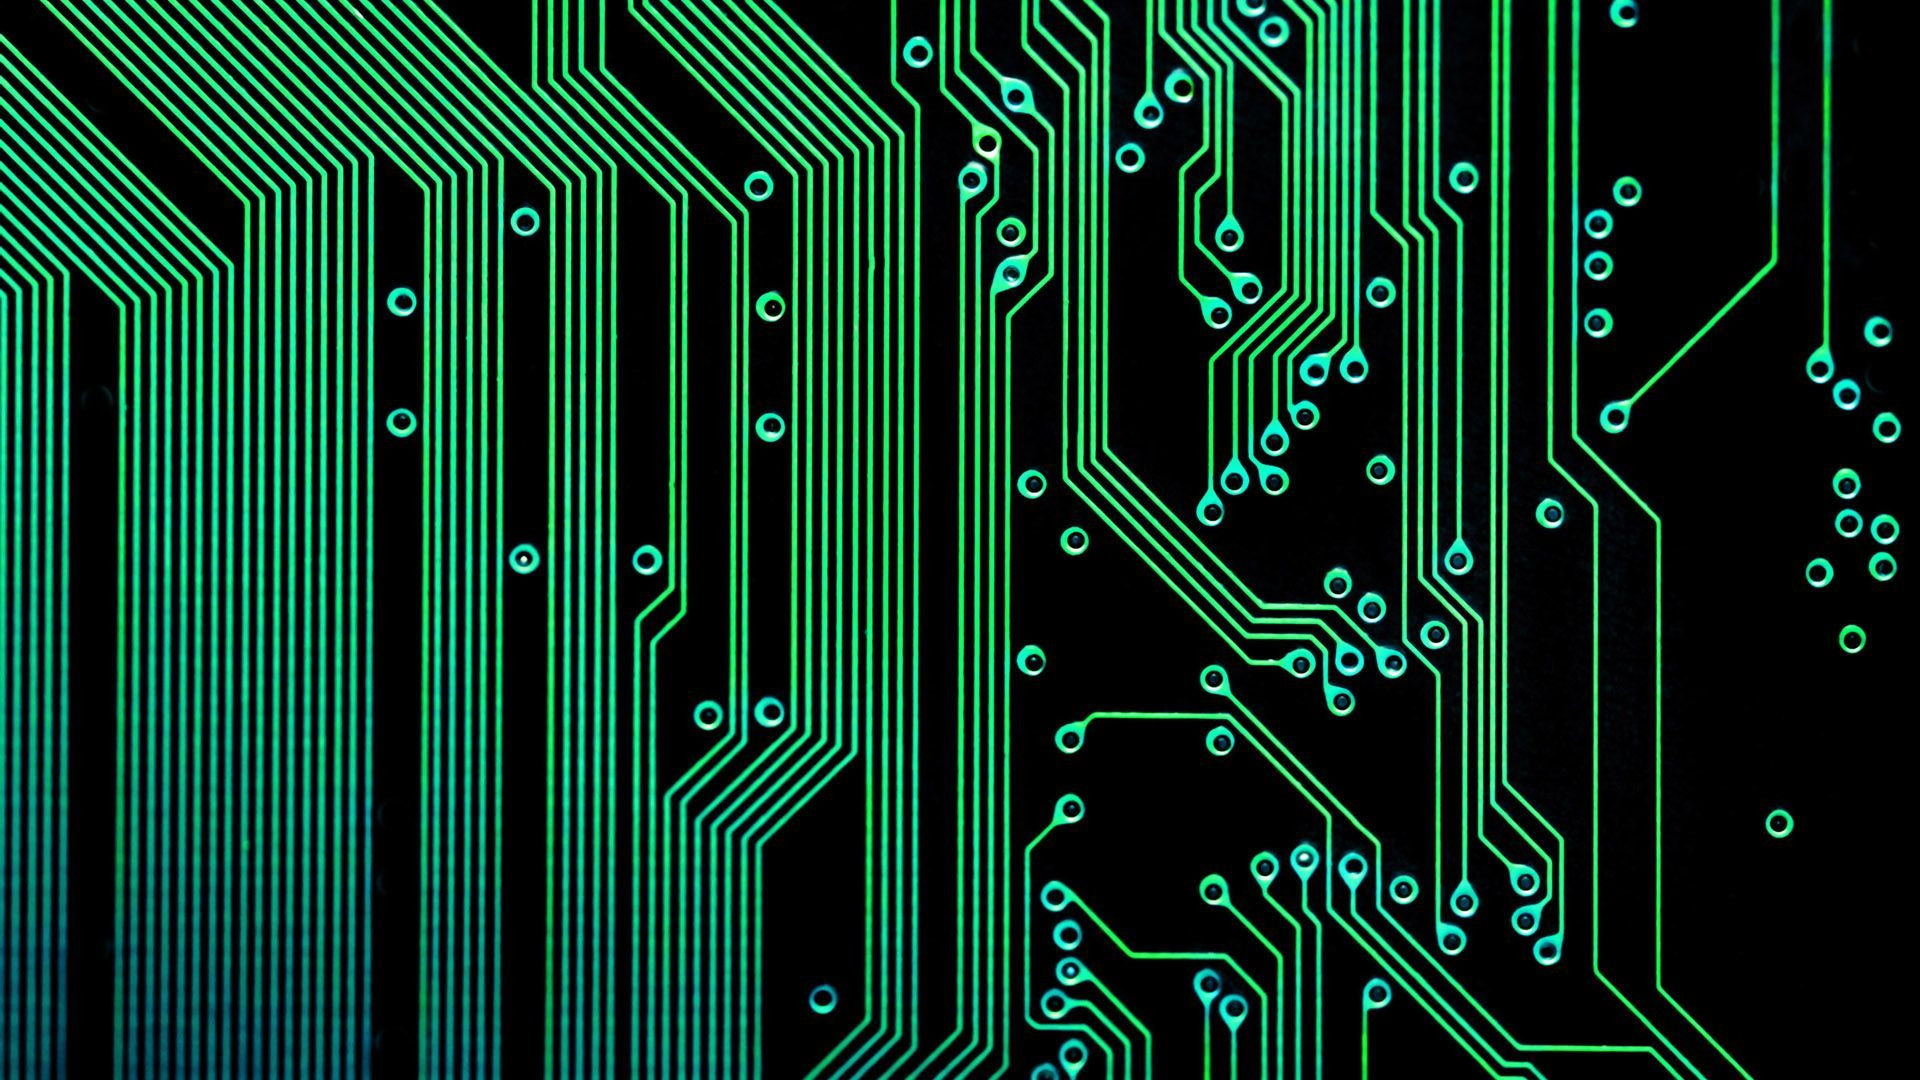 Electronic Circuit Wallpapers - Top